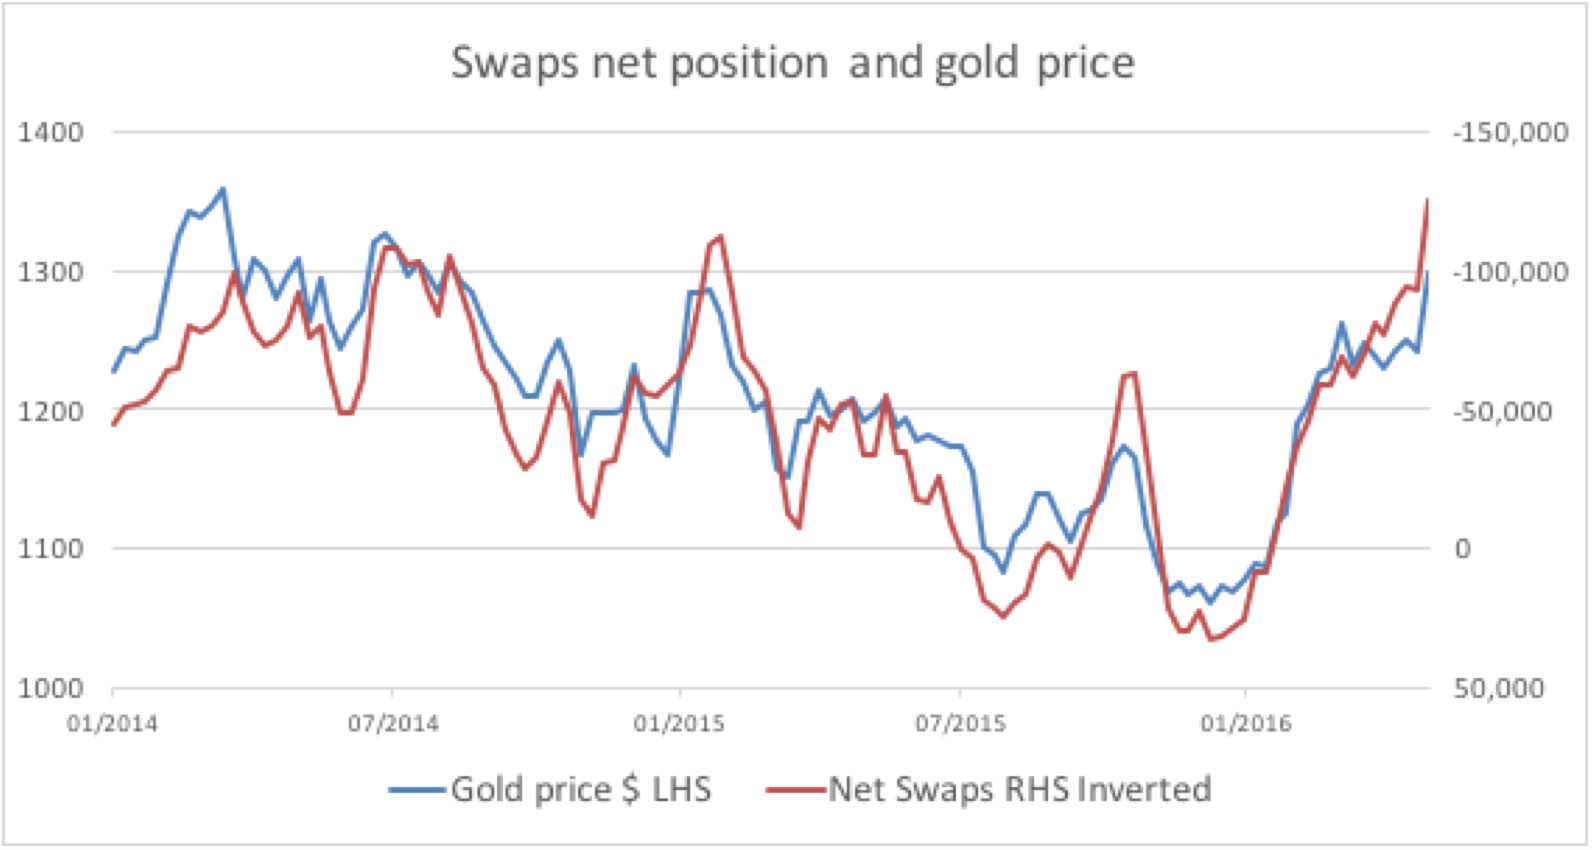 swaps net position and gold price